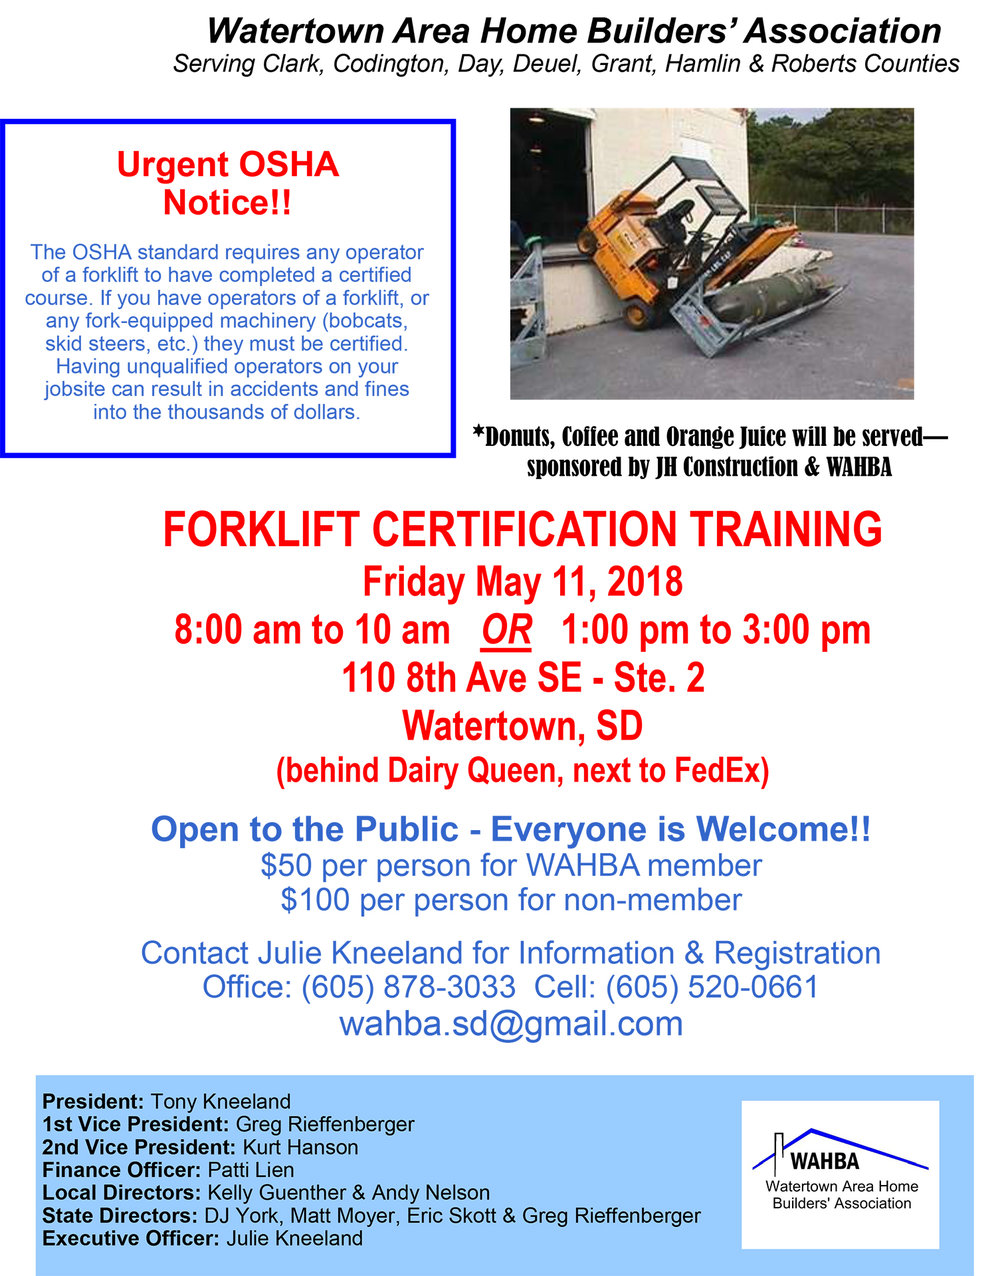 2018 Forklift Certification Training Flyer.jpg